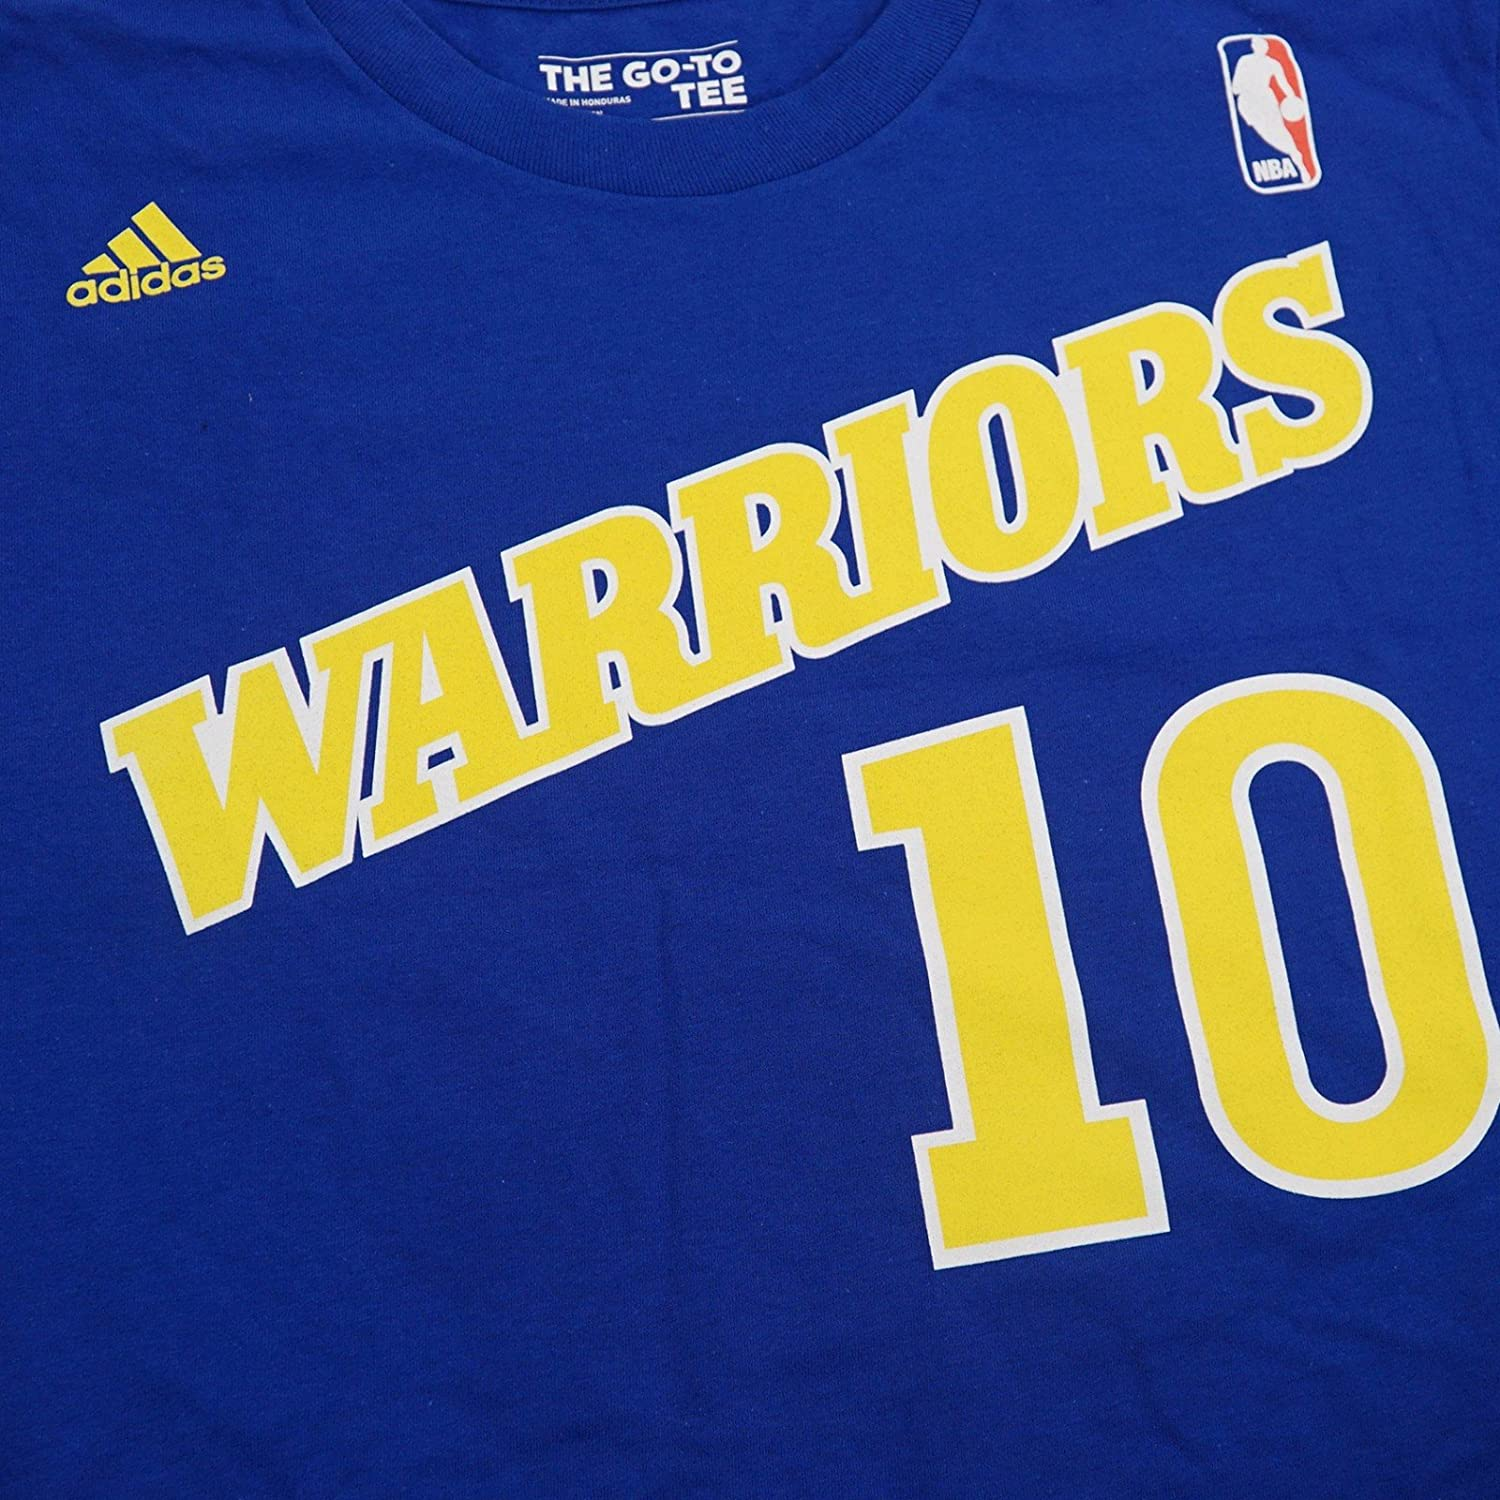 State T Adidas Shirt Bol Warriors Royal Manute Throwback Golden Blue nNOyv0wm8P